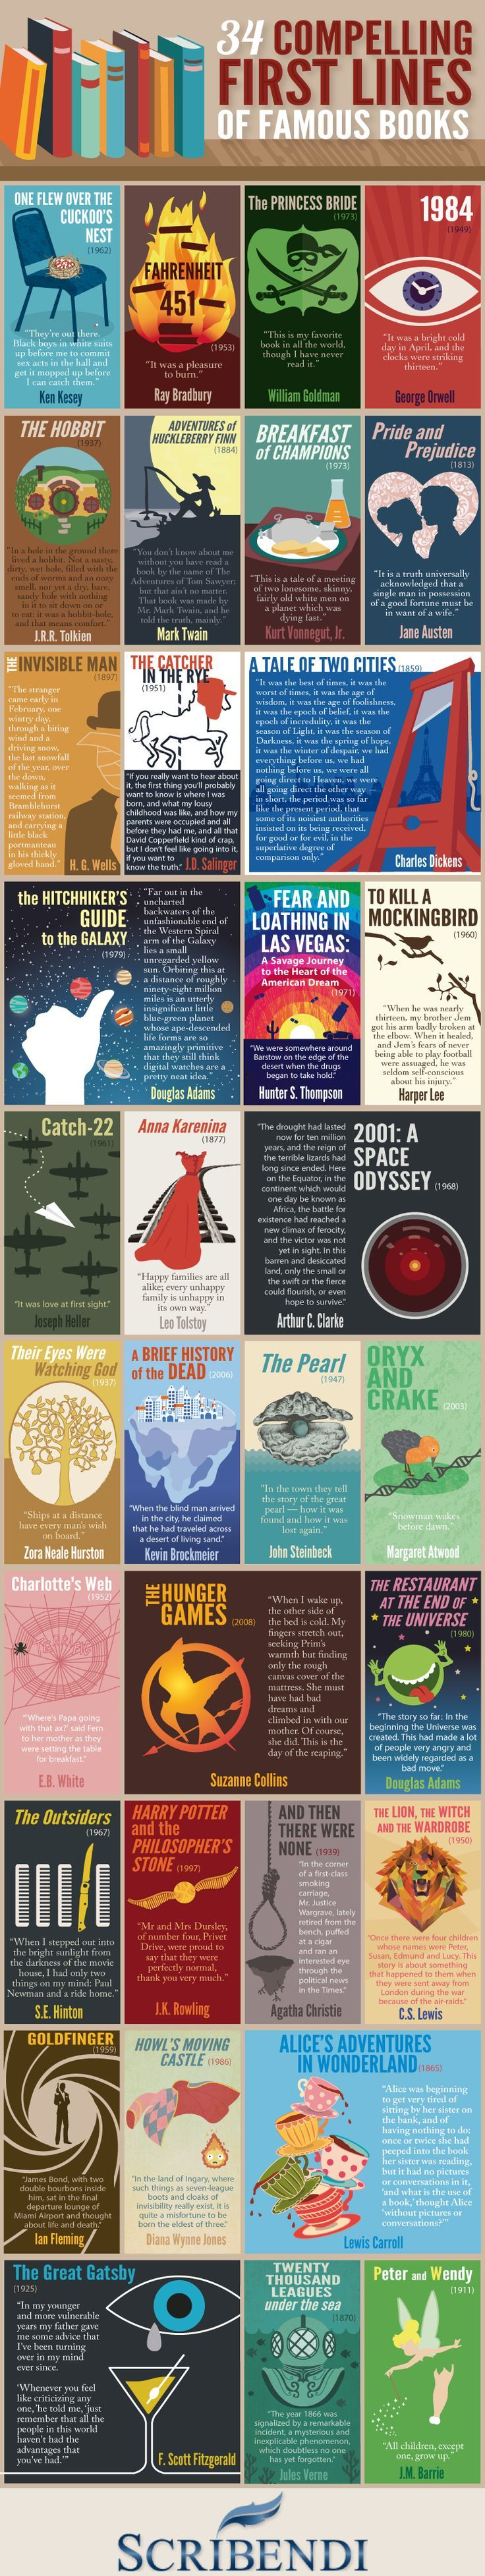 This Awesome Graphic Lays Out the Best Literary First Lines of All Time